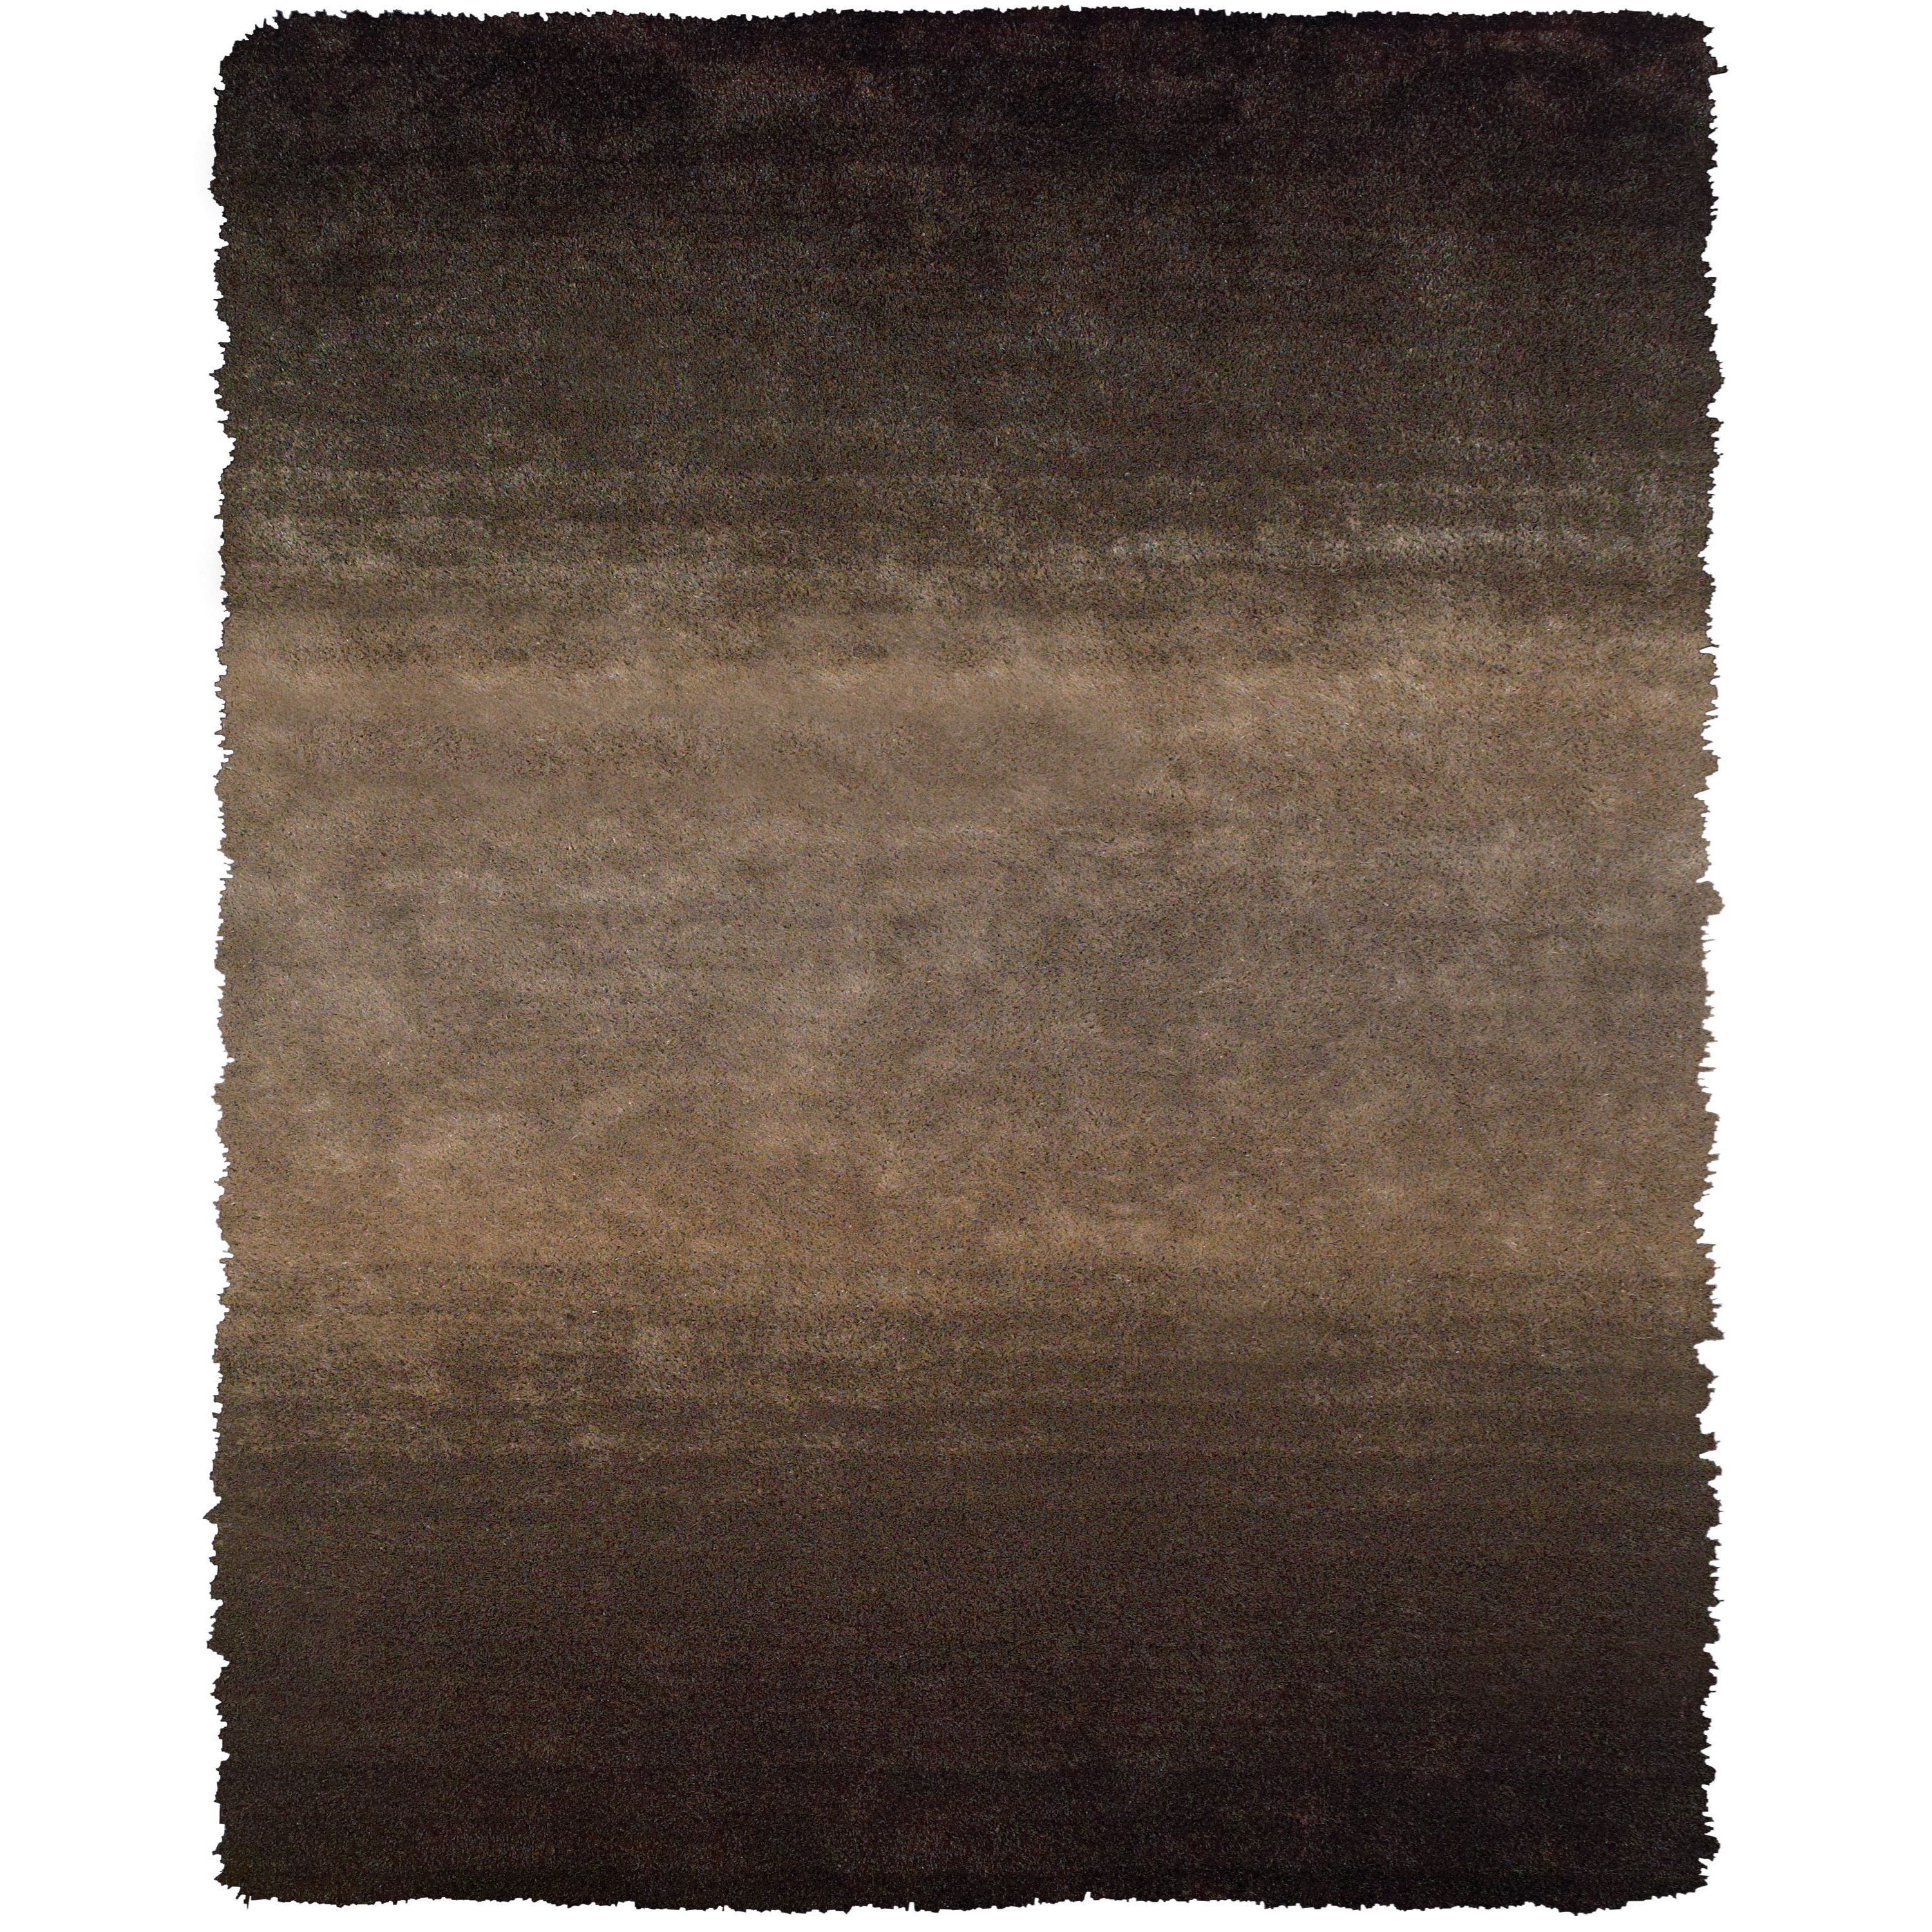 "Indochine Brown 7'-6"" x 9'-6"" Area Rug by Feizy Rugs at Sprintz Furniture"